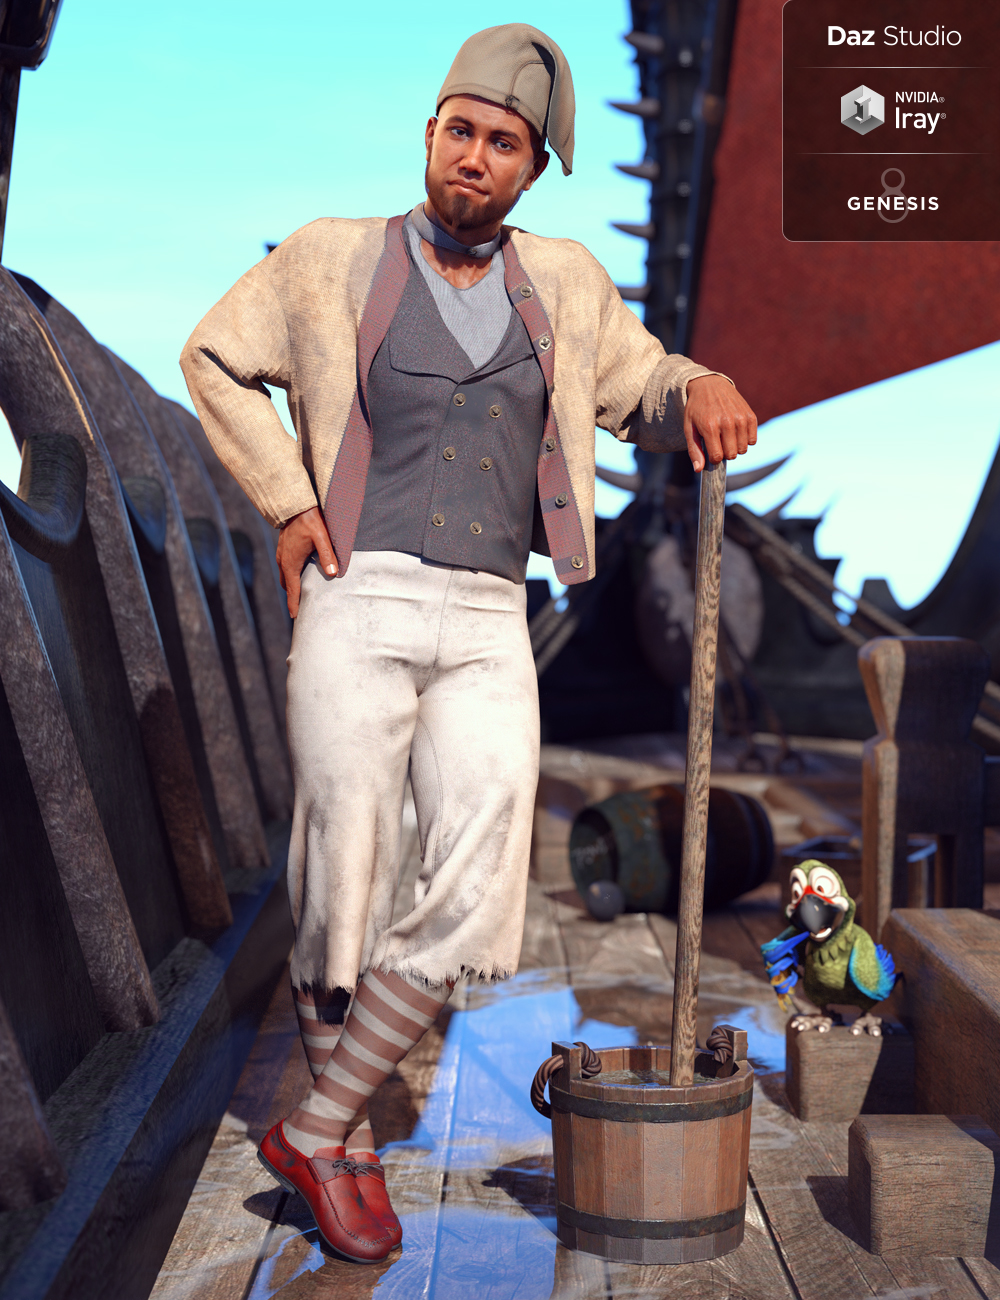 dForce Deck Hand Outfit for Genesis 8 Male(s) by: Barbara BrundonMoonscape GraphicsSade, 3D Models by Daz 3D